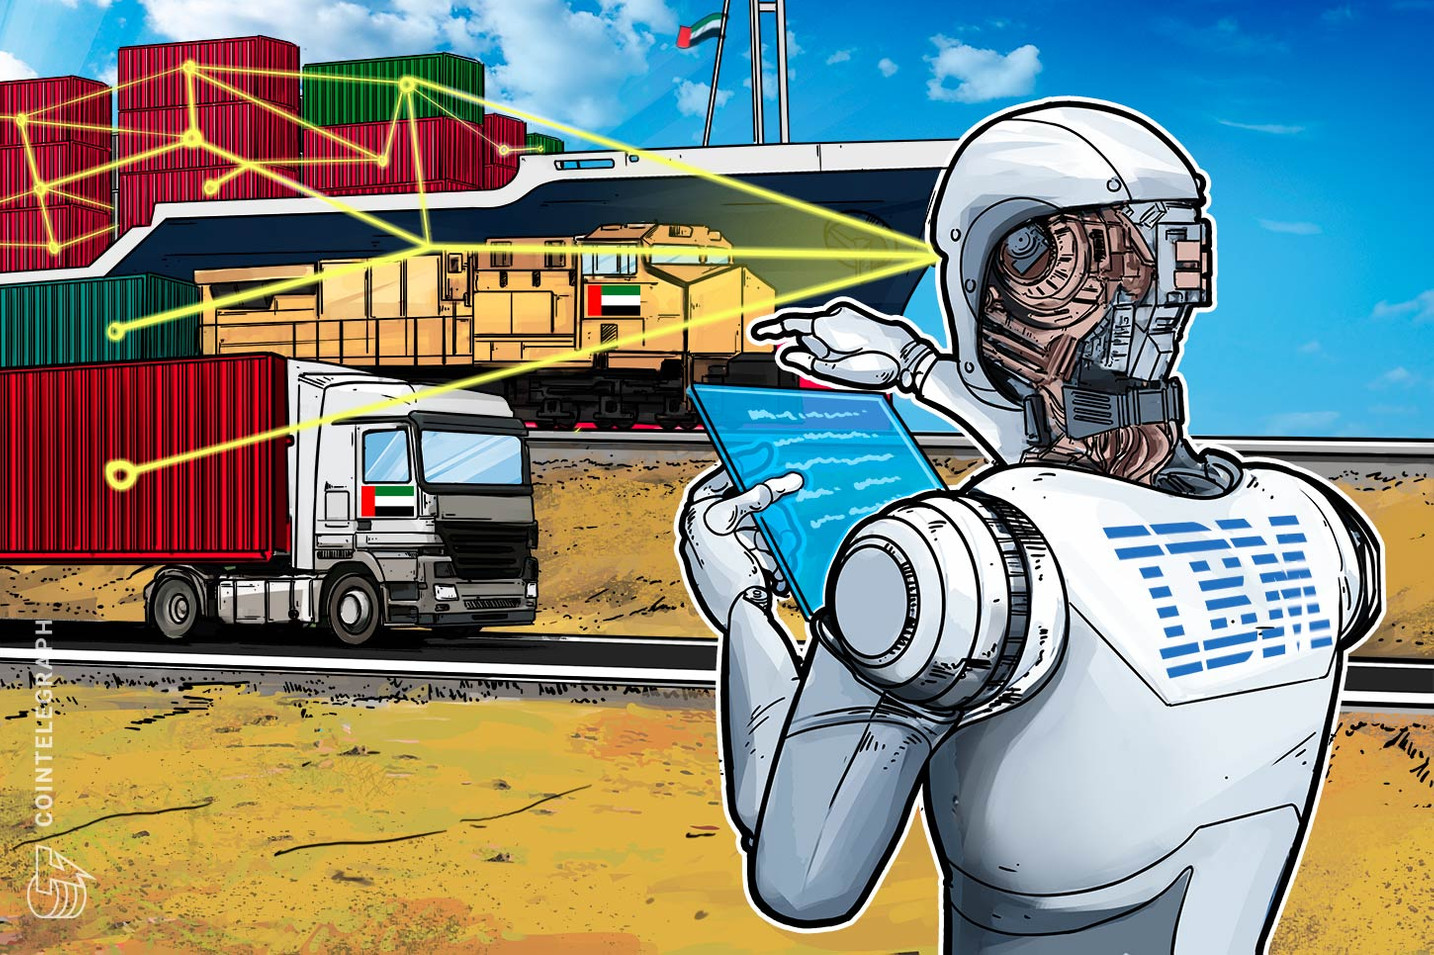 IBM Partners with Abu Dhabi National Oil Company for Blockchain Supply Chain System